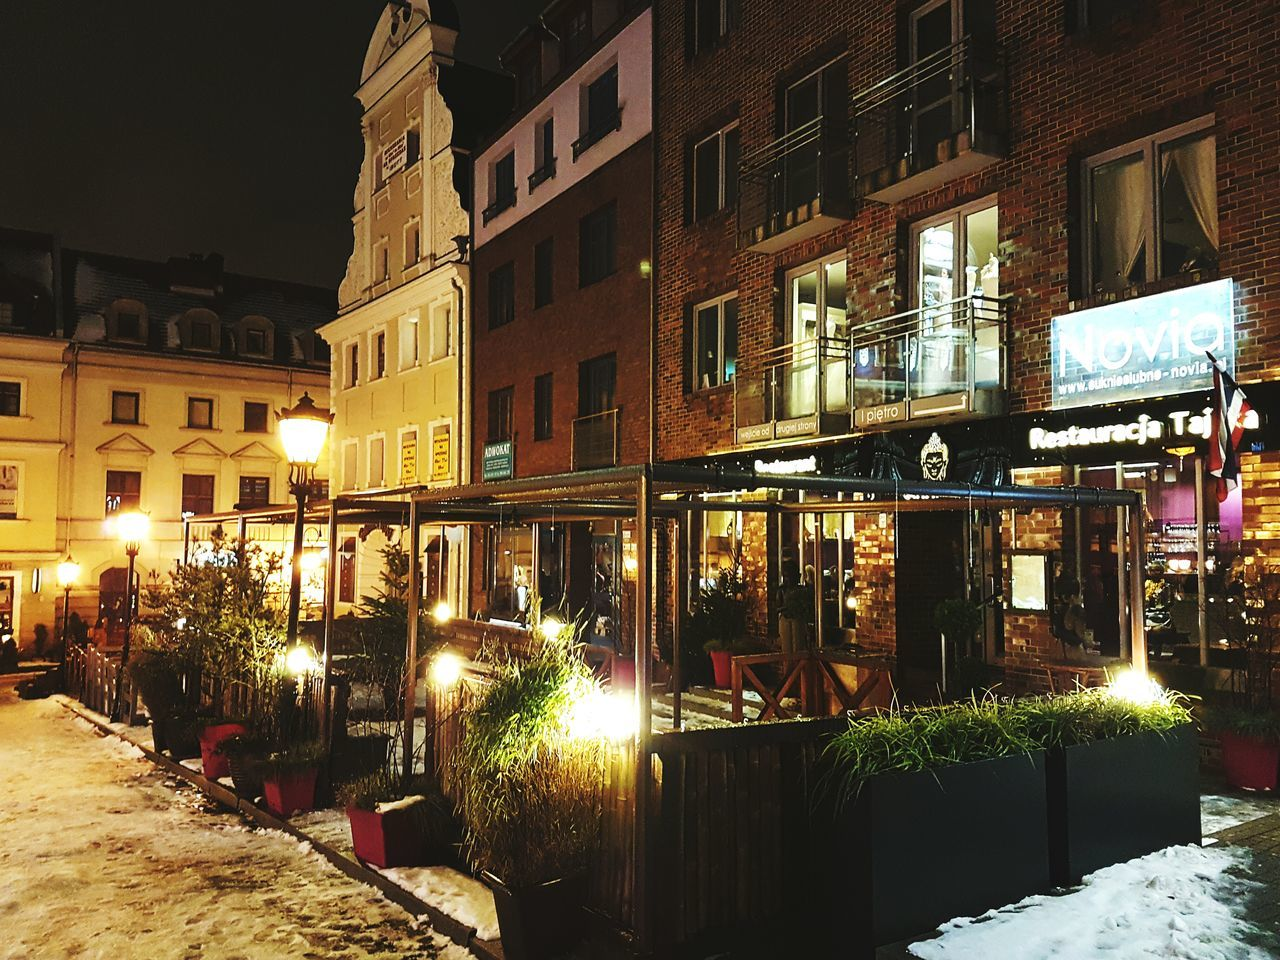 Night City Street Light Street Winter Architecture Outdoors Dinner Date Restaurant Building